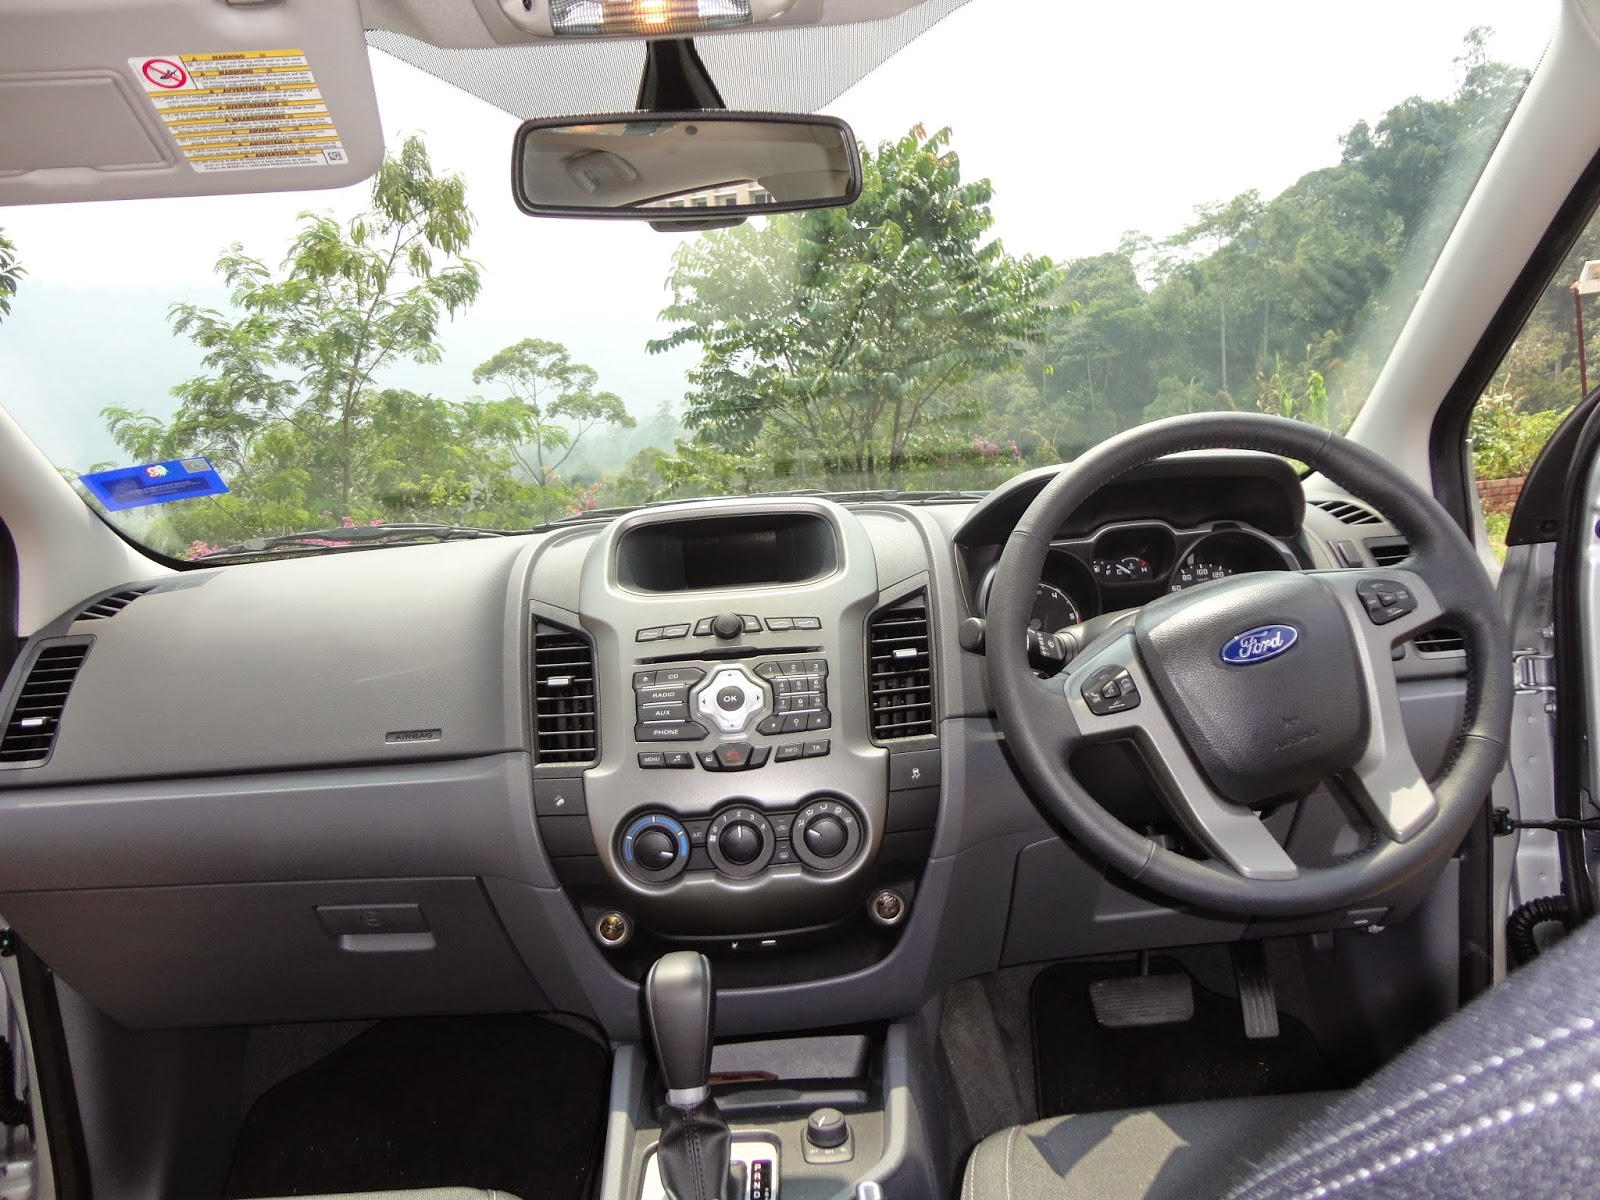 Car interior malaysia - The Ranger S Interior Is More Car Like Than The Previous Generation Of Ford Ranger It Sits High Up And Allows You 800mm Of Water Wading Capability Which